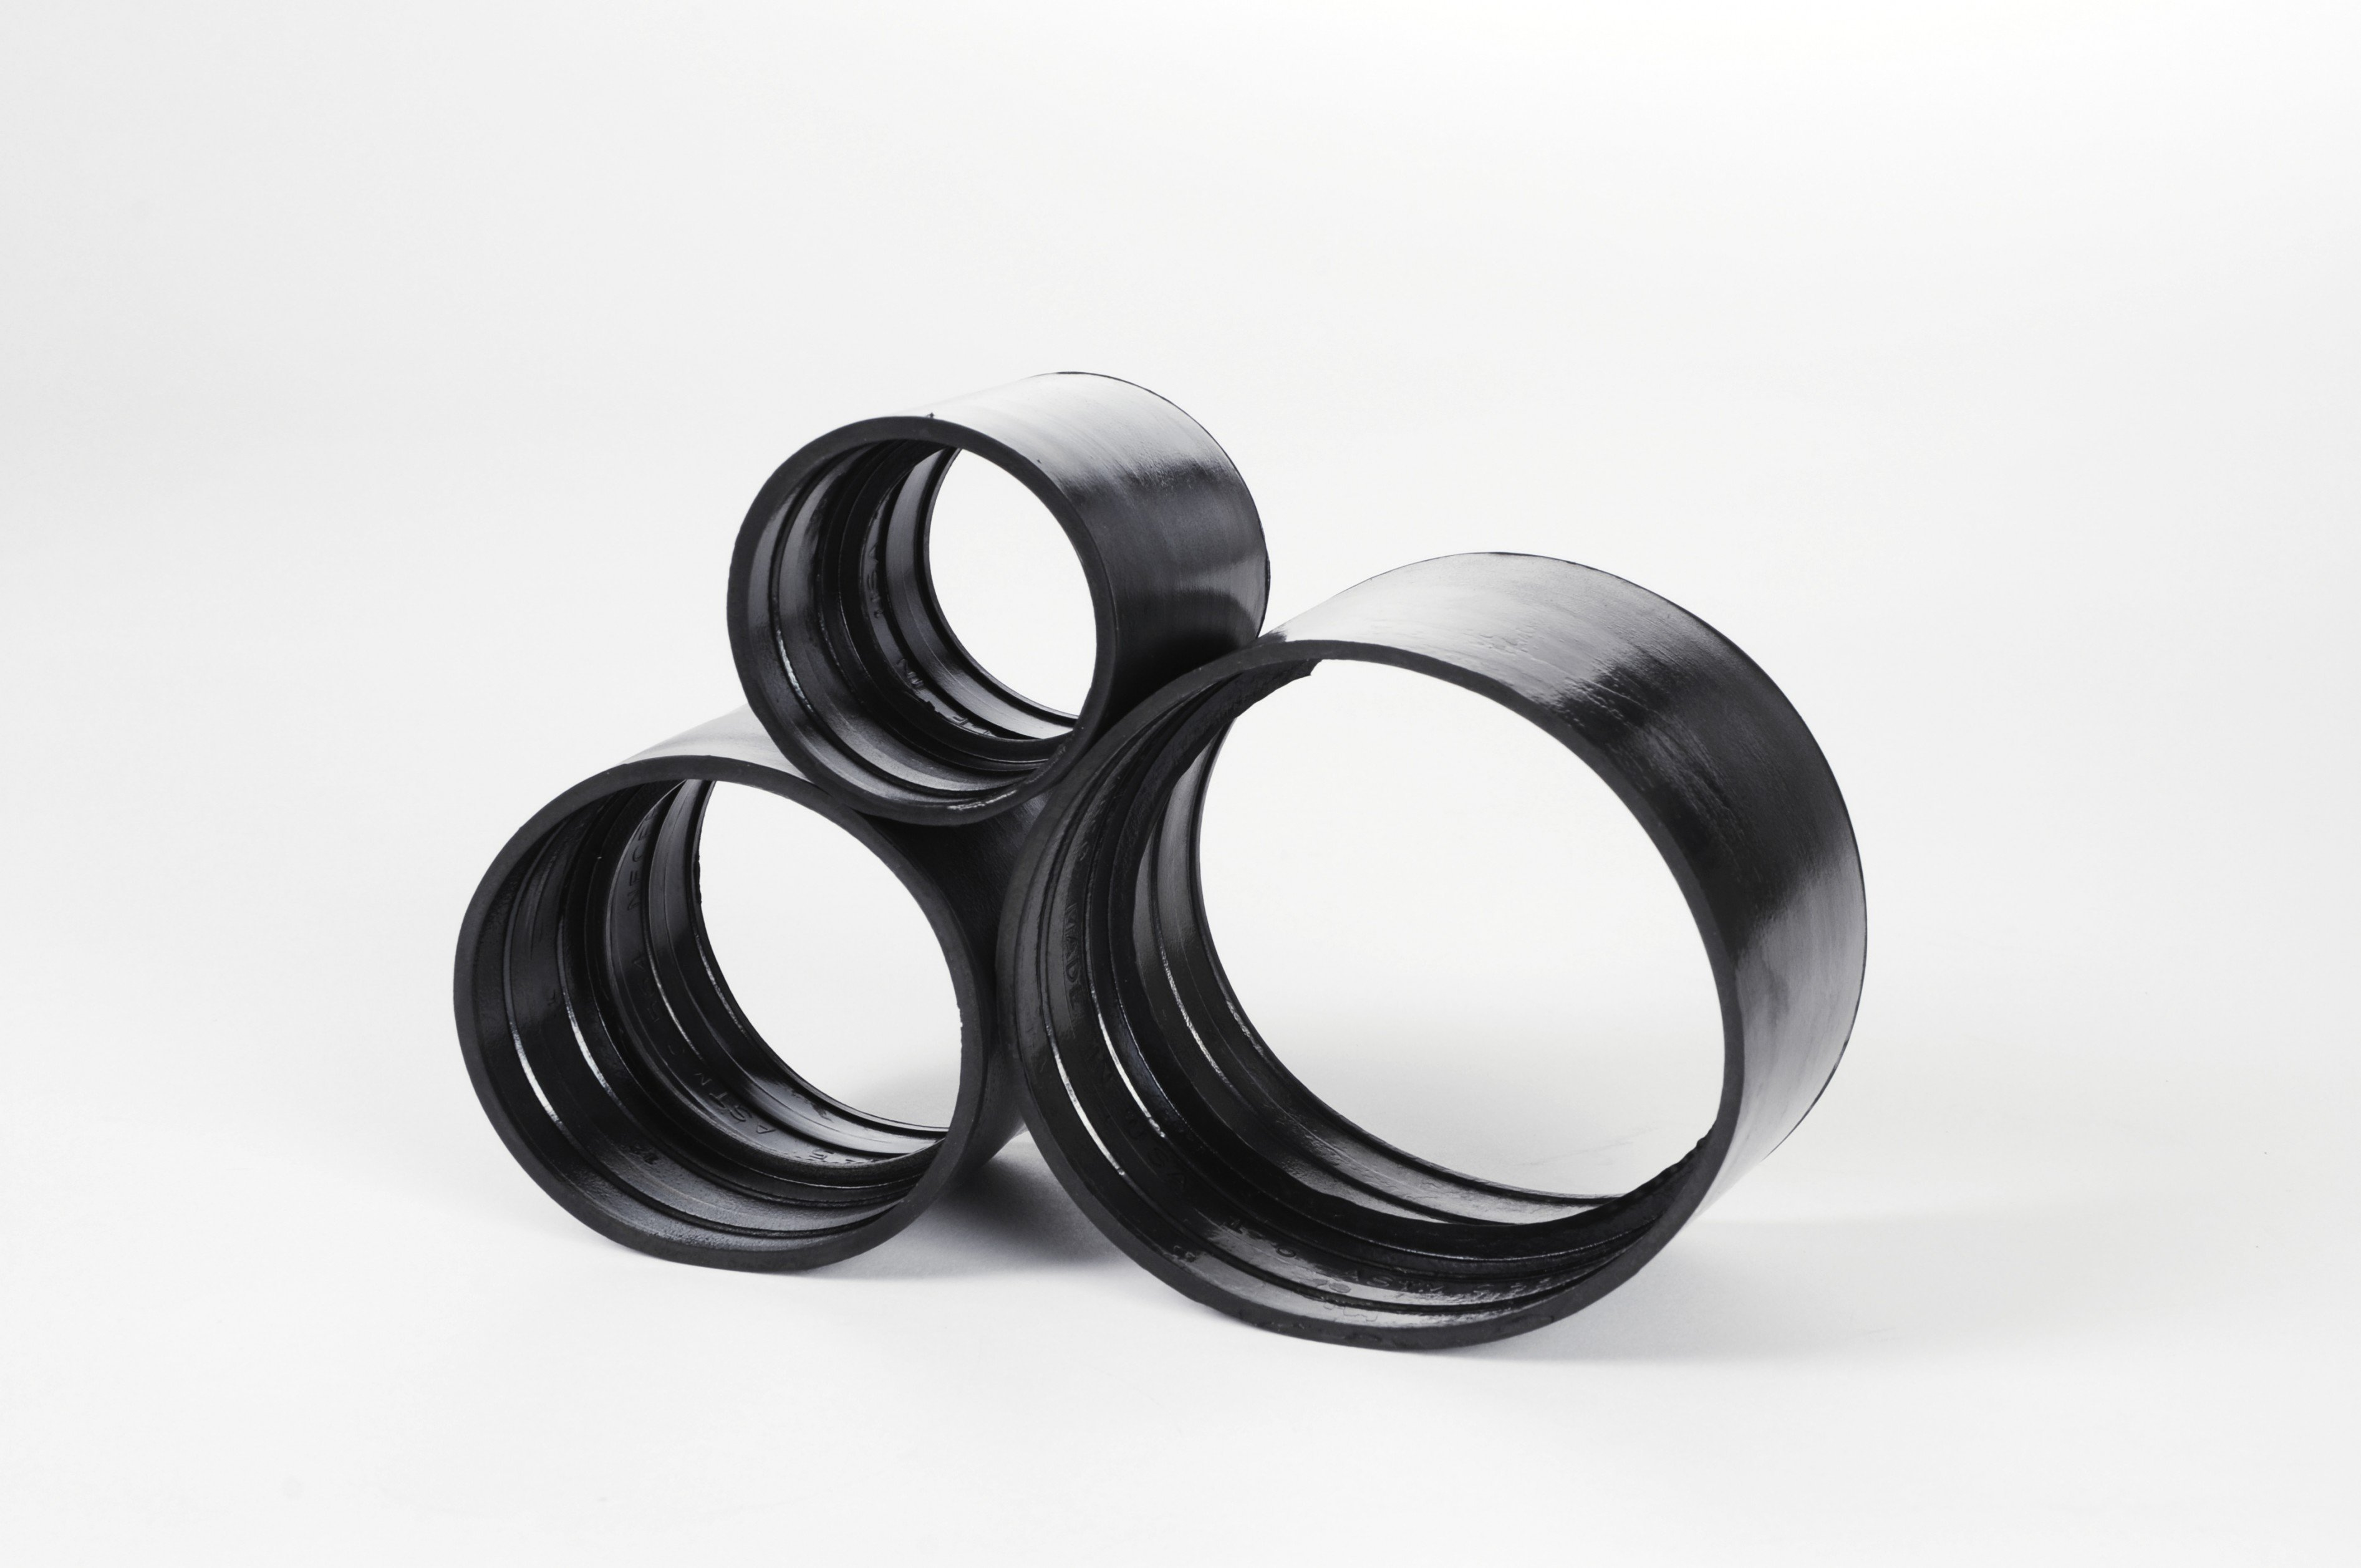 Large, Medium, and Small Gasket Sizes Stacked On Each Other